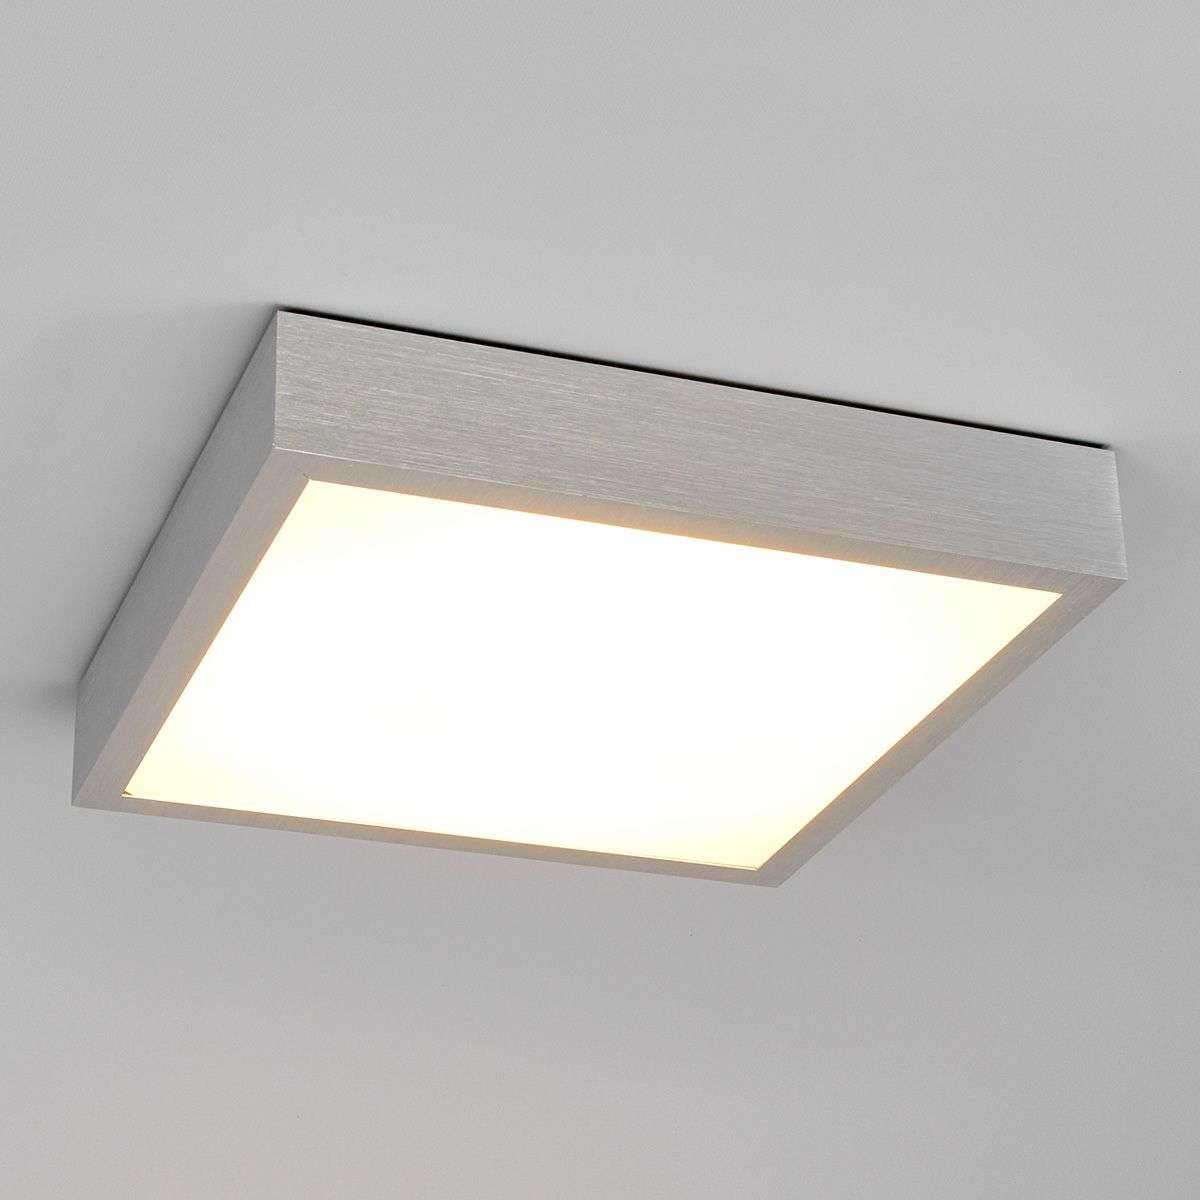 Light Fixtures For The Kitchen Ceiling